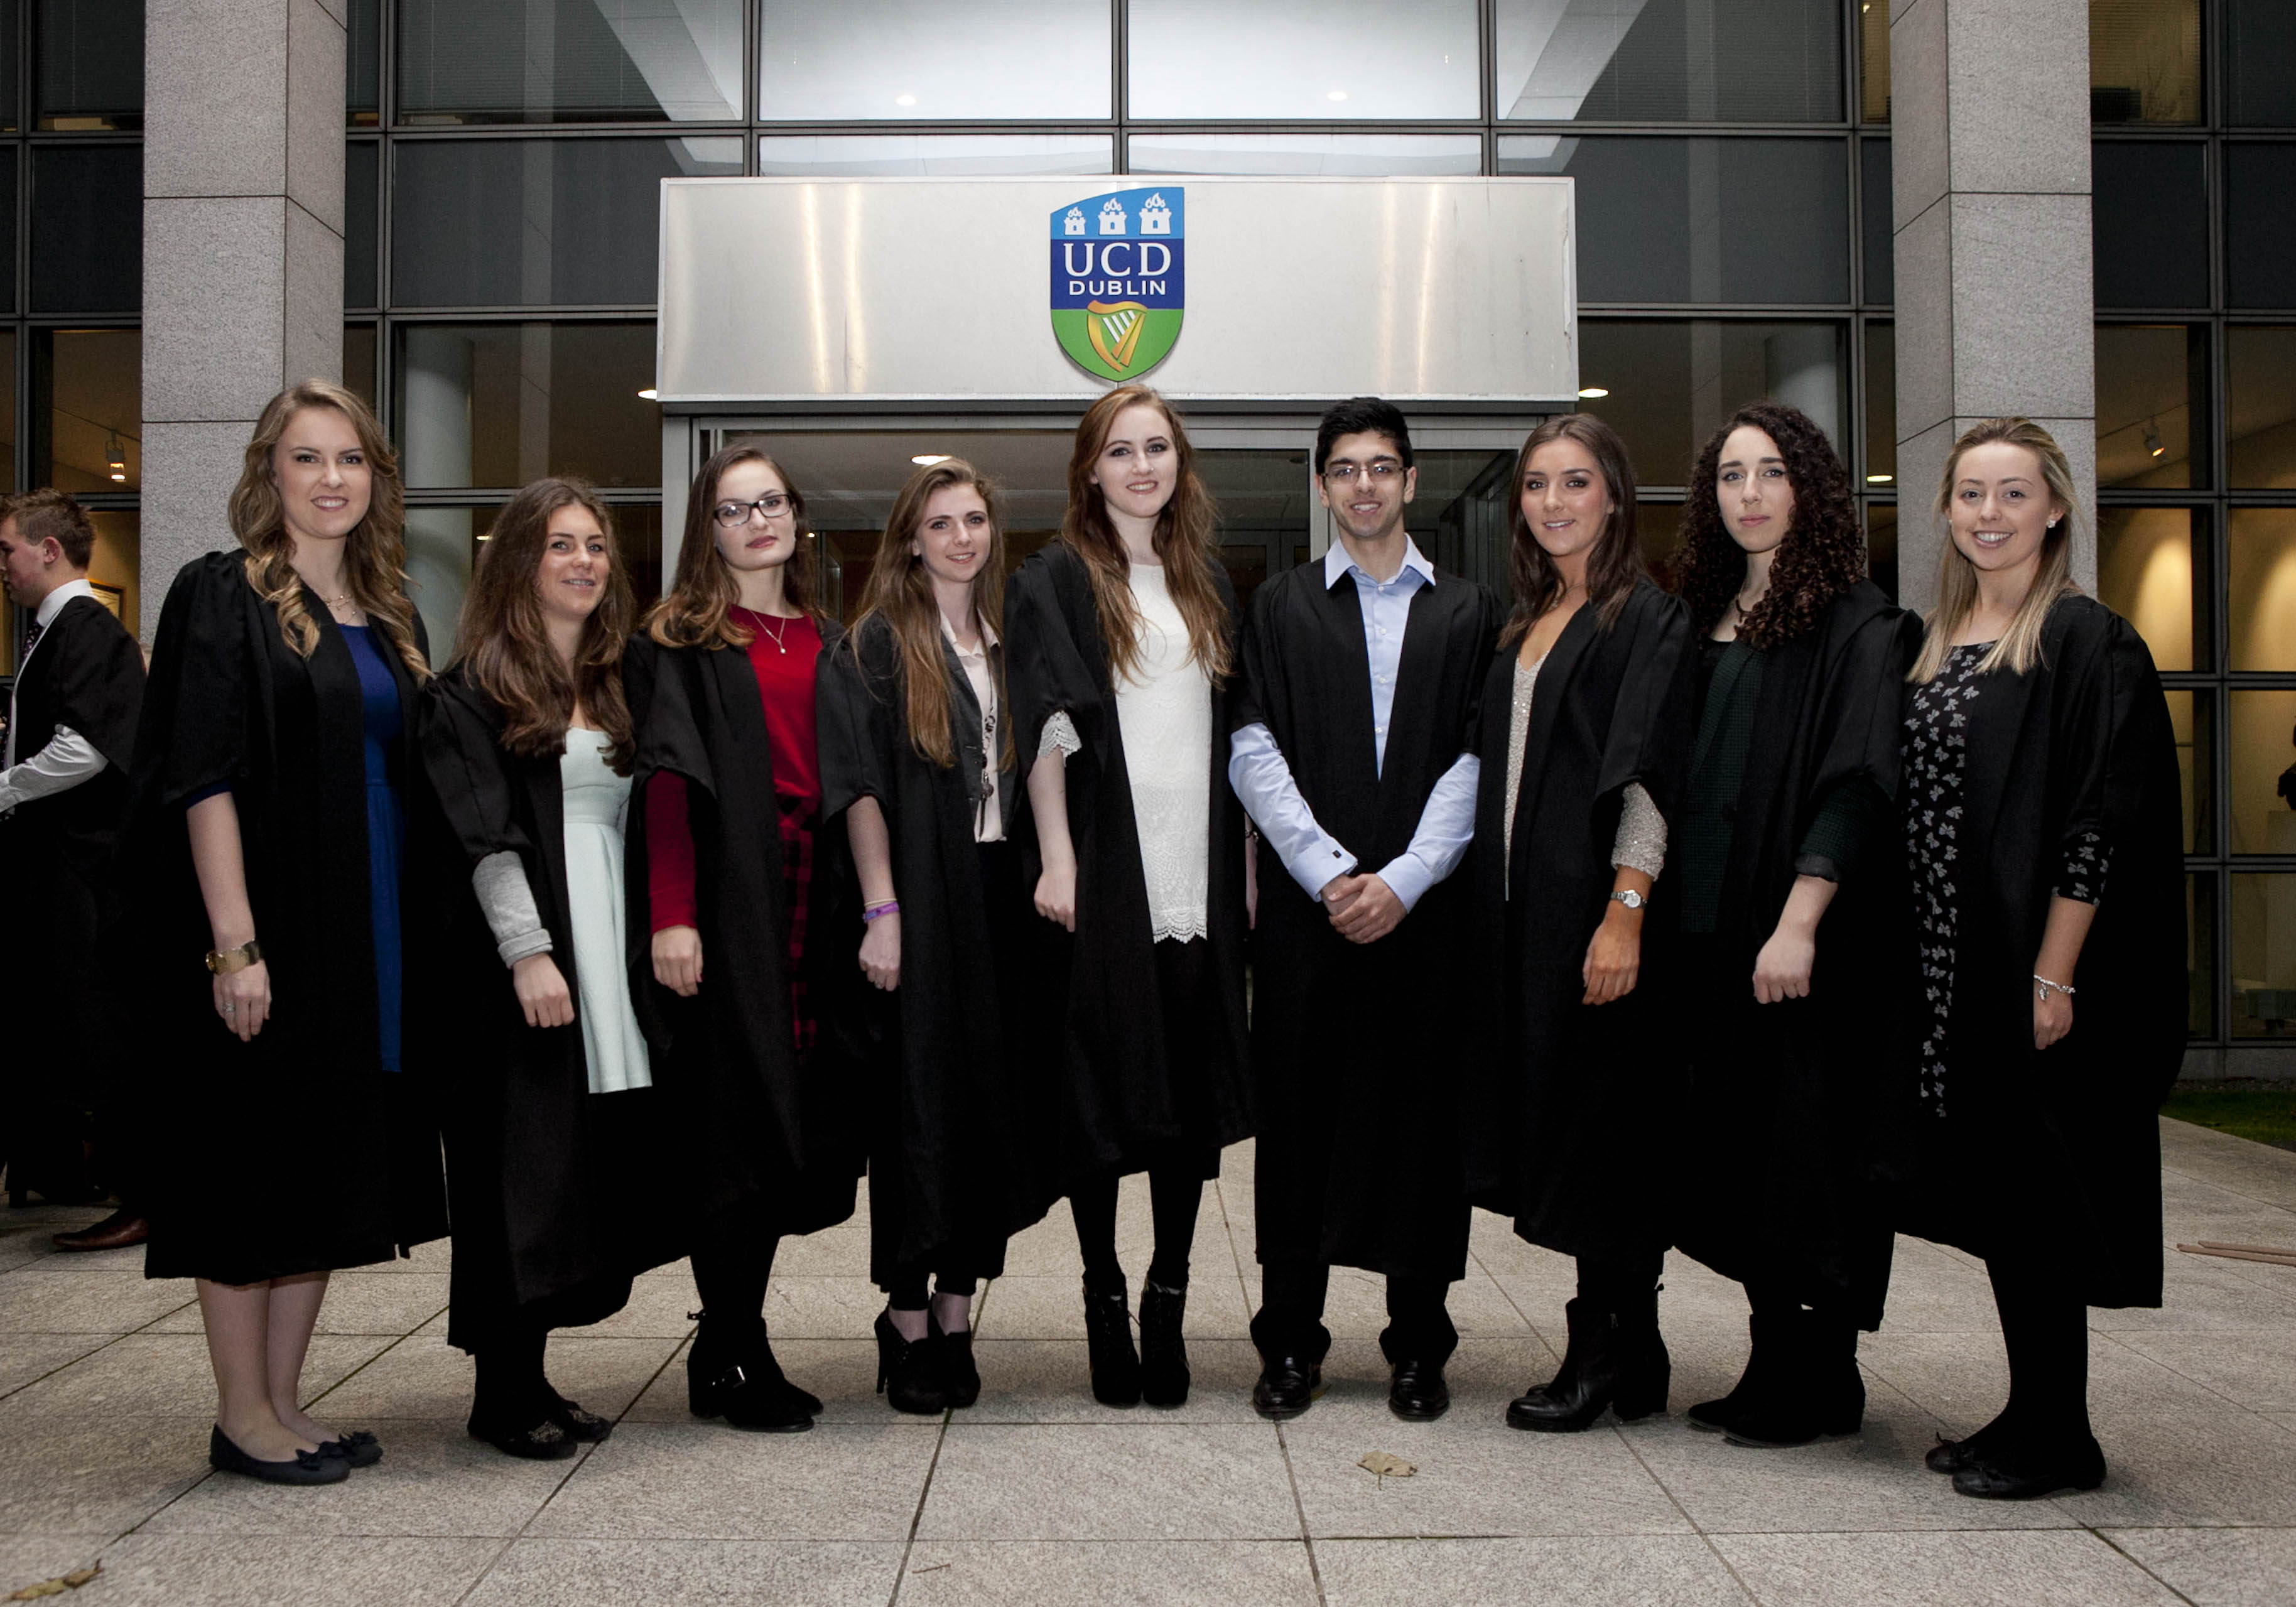 Some of the 19 Institute of Education students who were recognized as UCD Entrance Scholars in November 2013